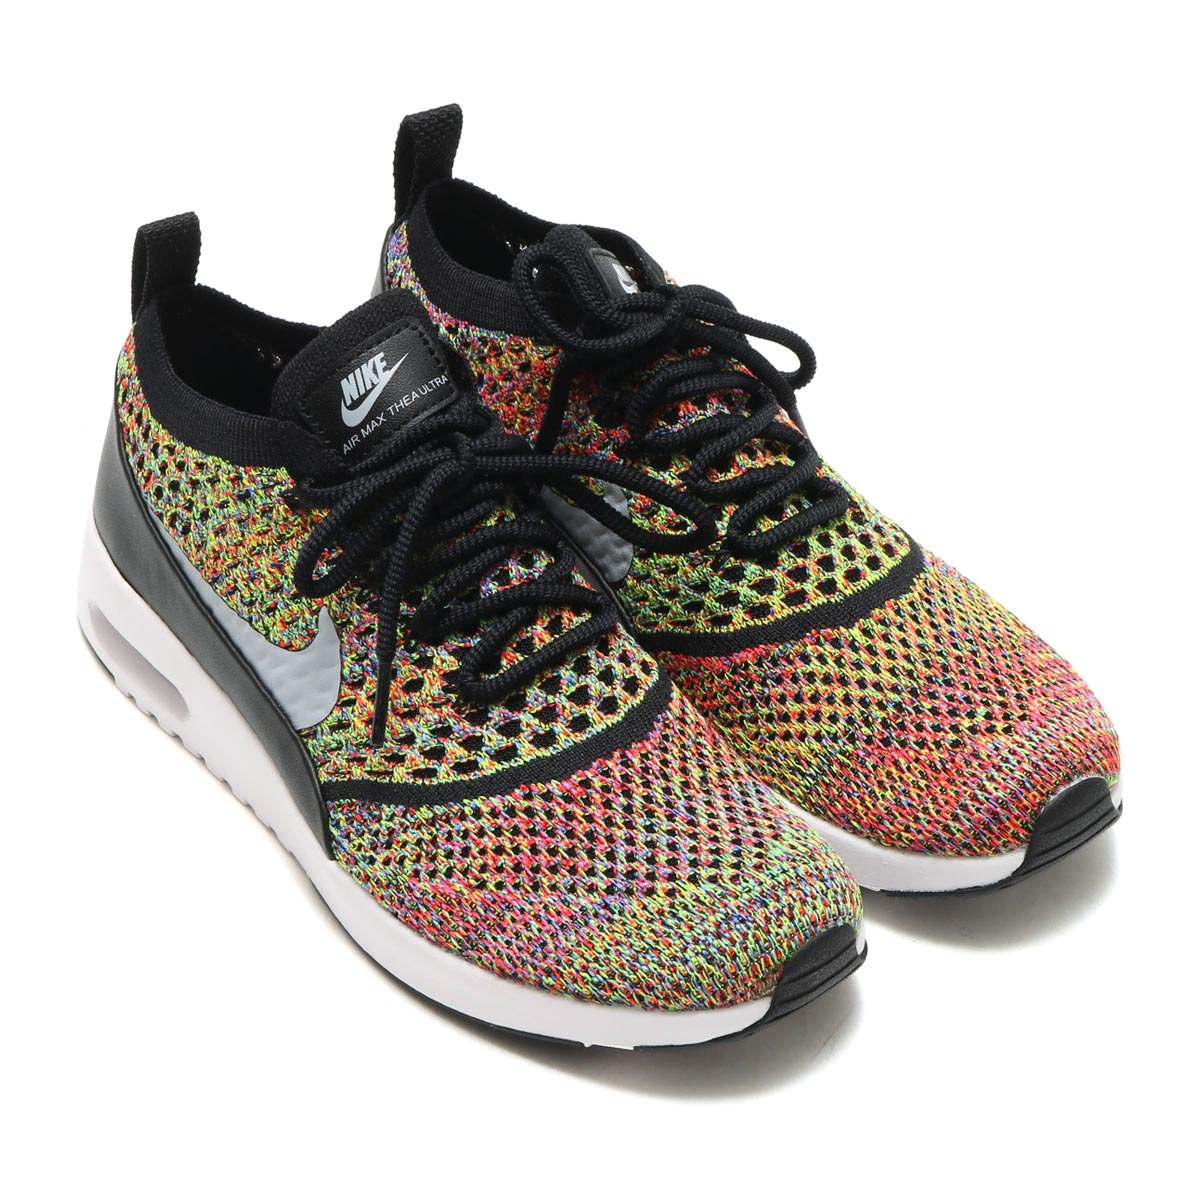 timeless design 09ec8 48fca NIKE W AIR MAX THEA ULTRA FK (Nike we Lady s Air Max Shea ultra FK ...